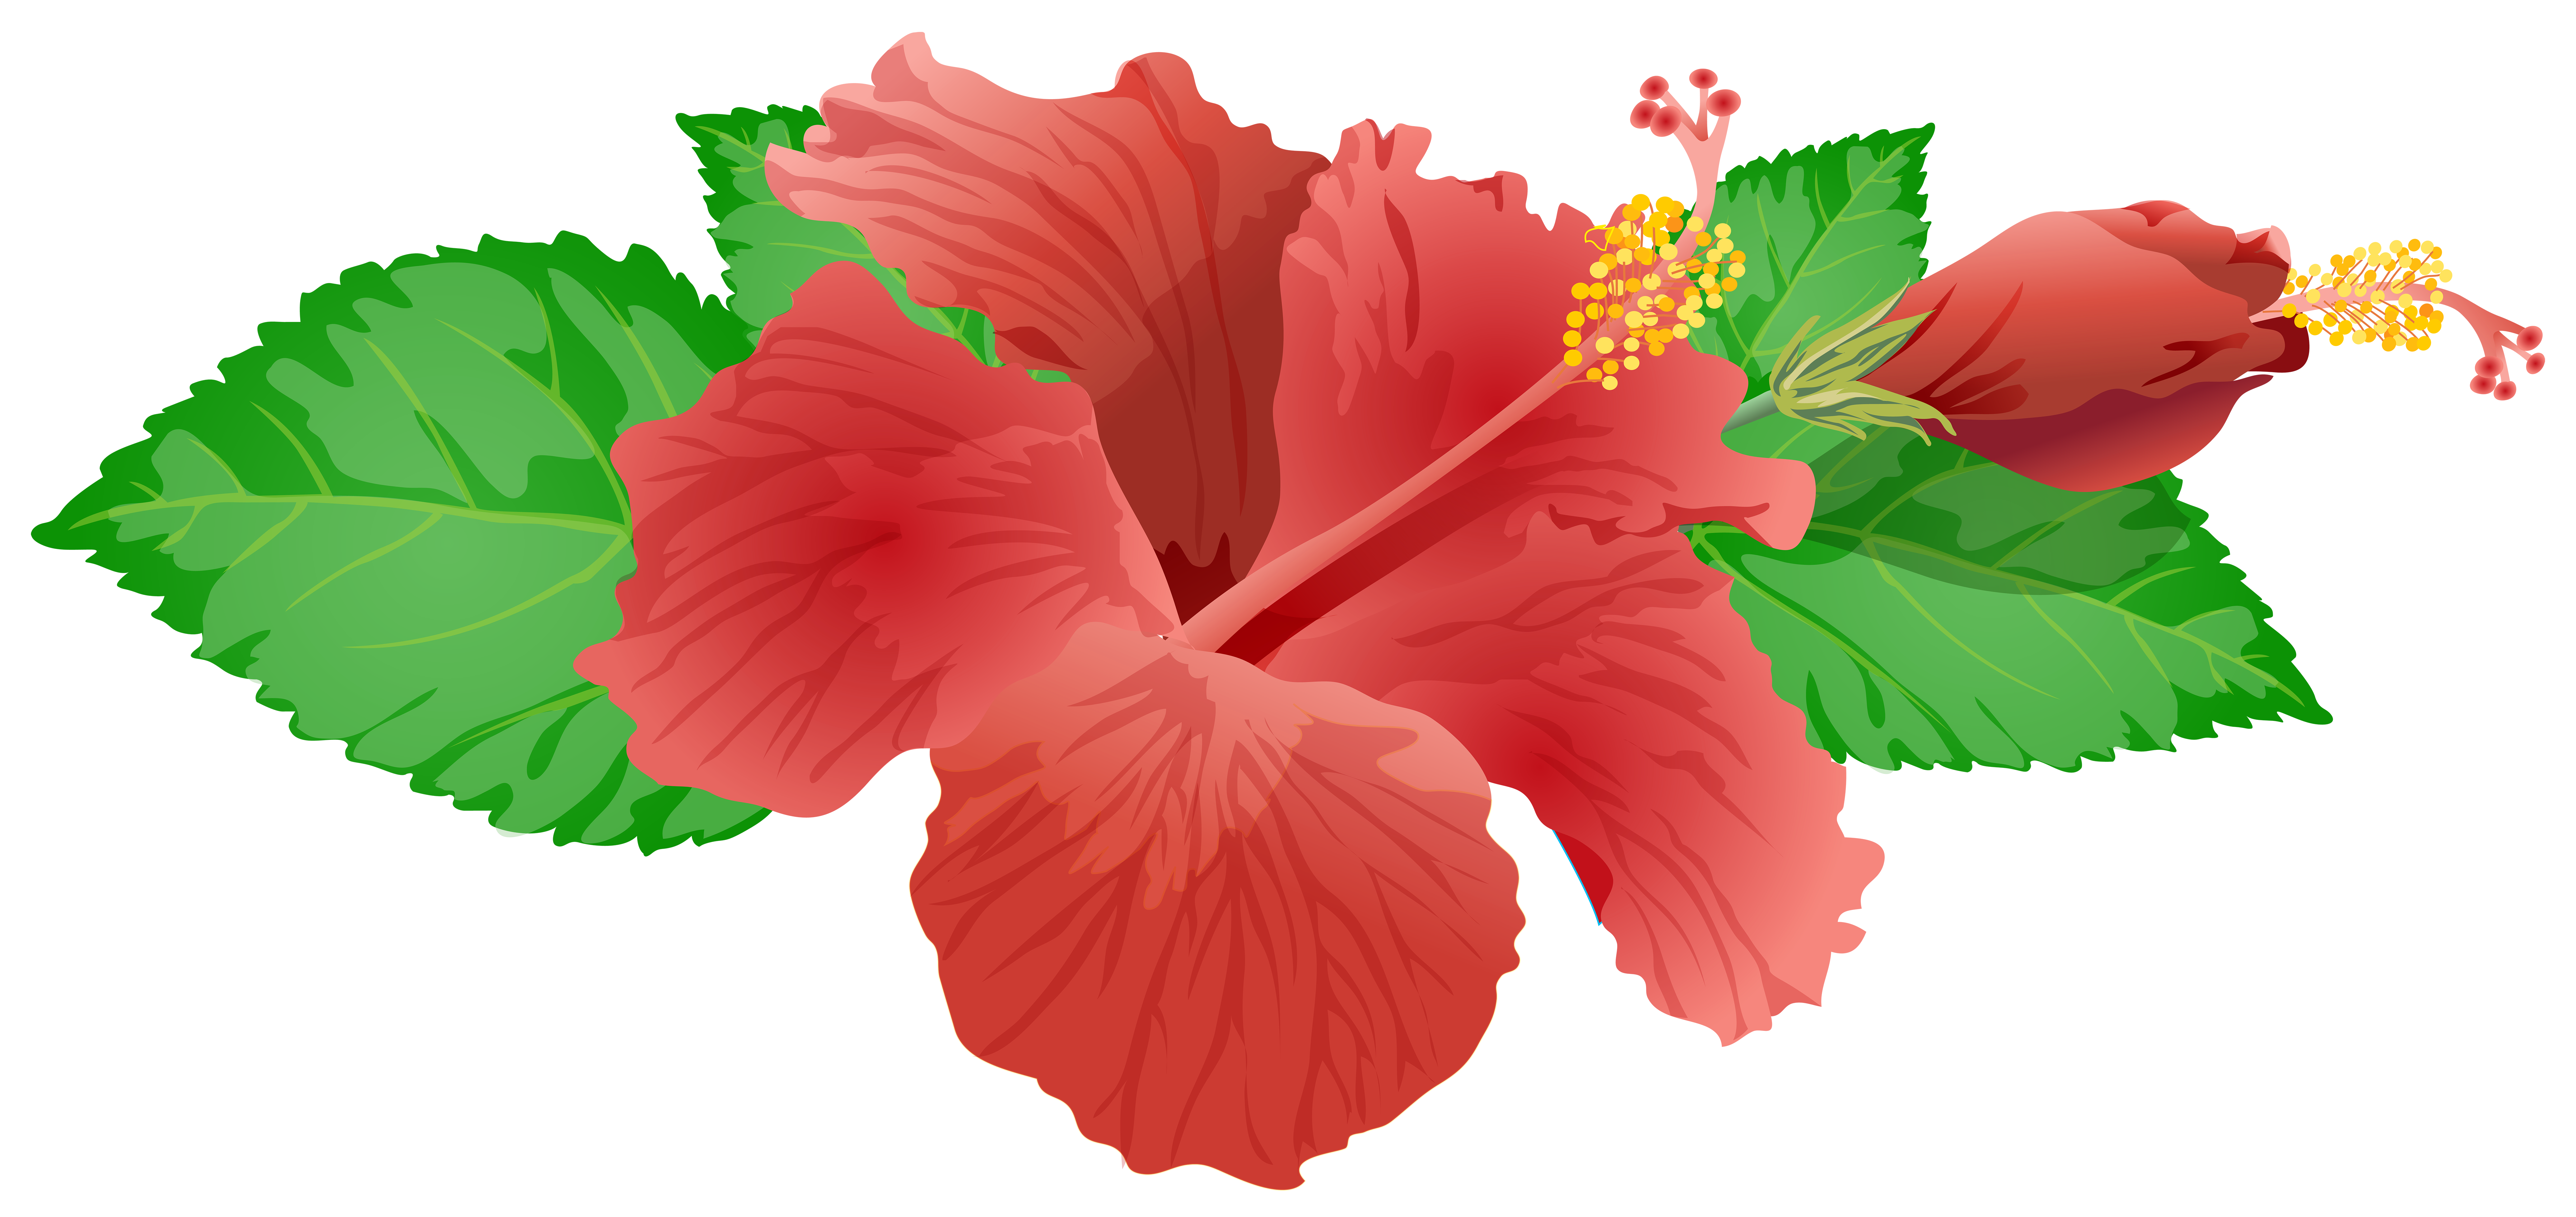 8000x3780 Red Flower Png Clip Art Image